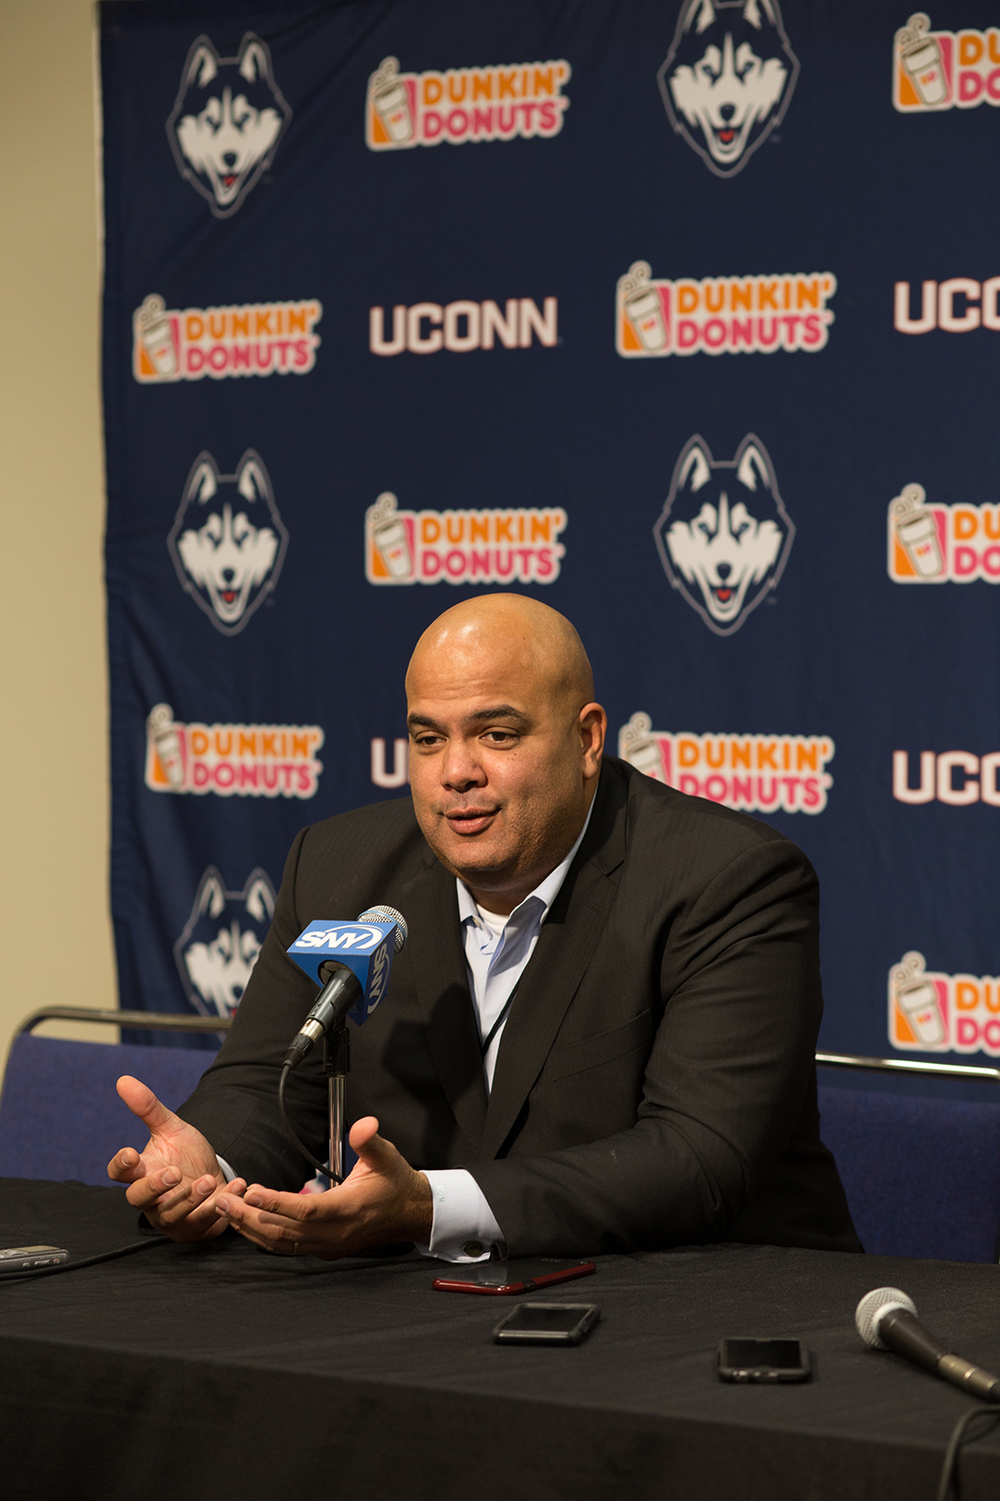 University of Connecticut athletic director Warde Manuel speaks at a press conference at halftime of the UConn women's basketball game against Memphis at the XL Center in Hartford, Connecticut on Jan. 30, 2016. (Jackson Haigis/The Daily Campus)